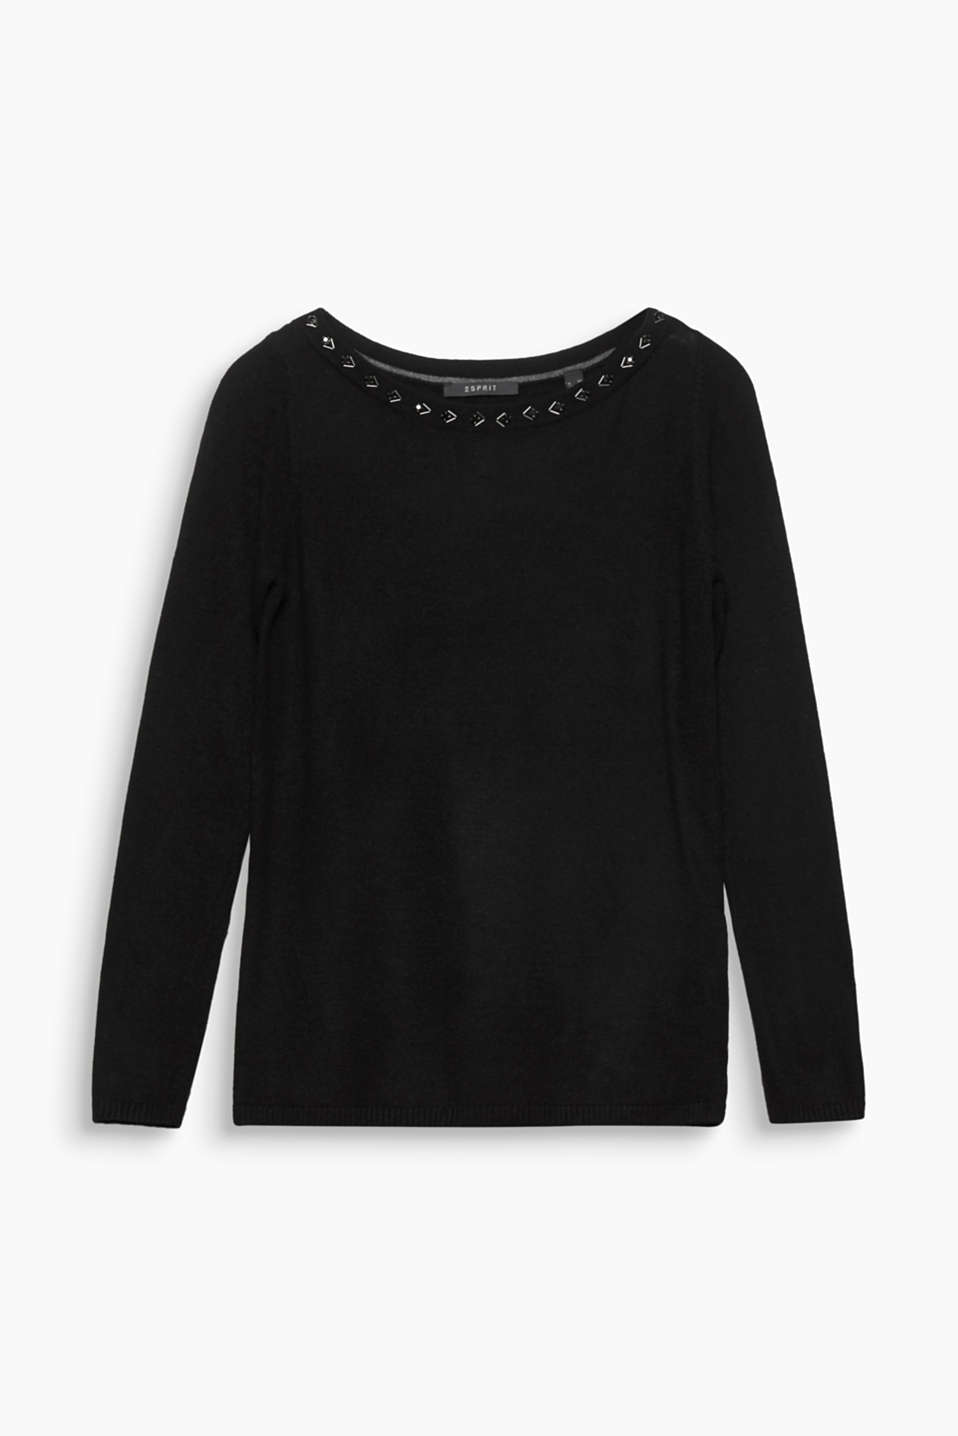 This jumper provides a luxurious touch with its soft cashmere blend and elegant rhinestones and sequins!